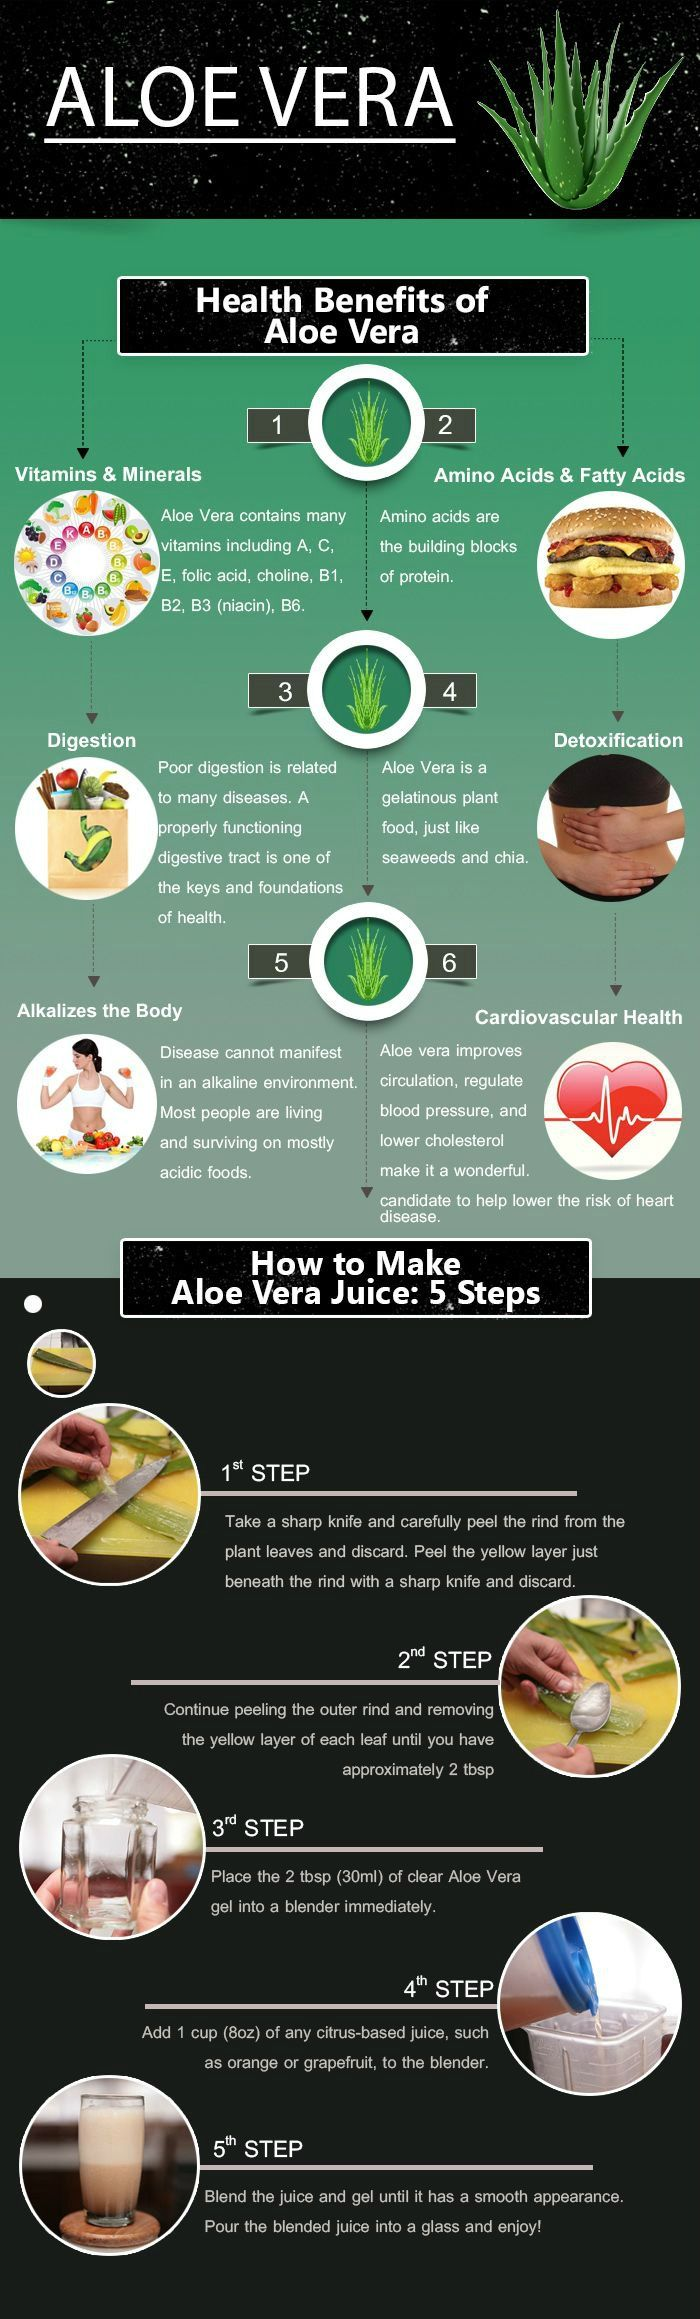 25 Amazing Benefits Of Aloe Vera For Skin, Hair And Health https://www.etsy.com/uk/shop/TheVoyageBird